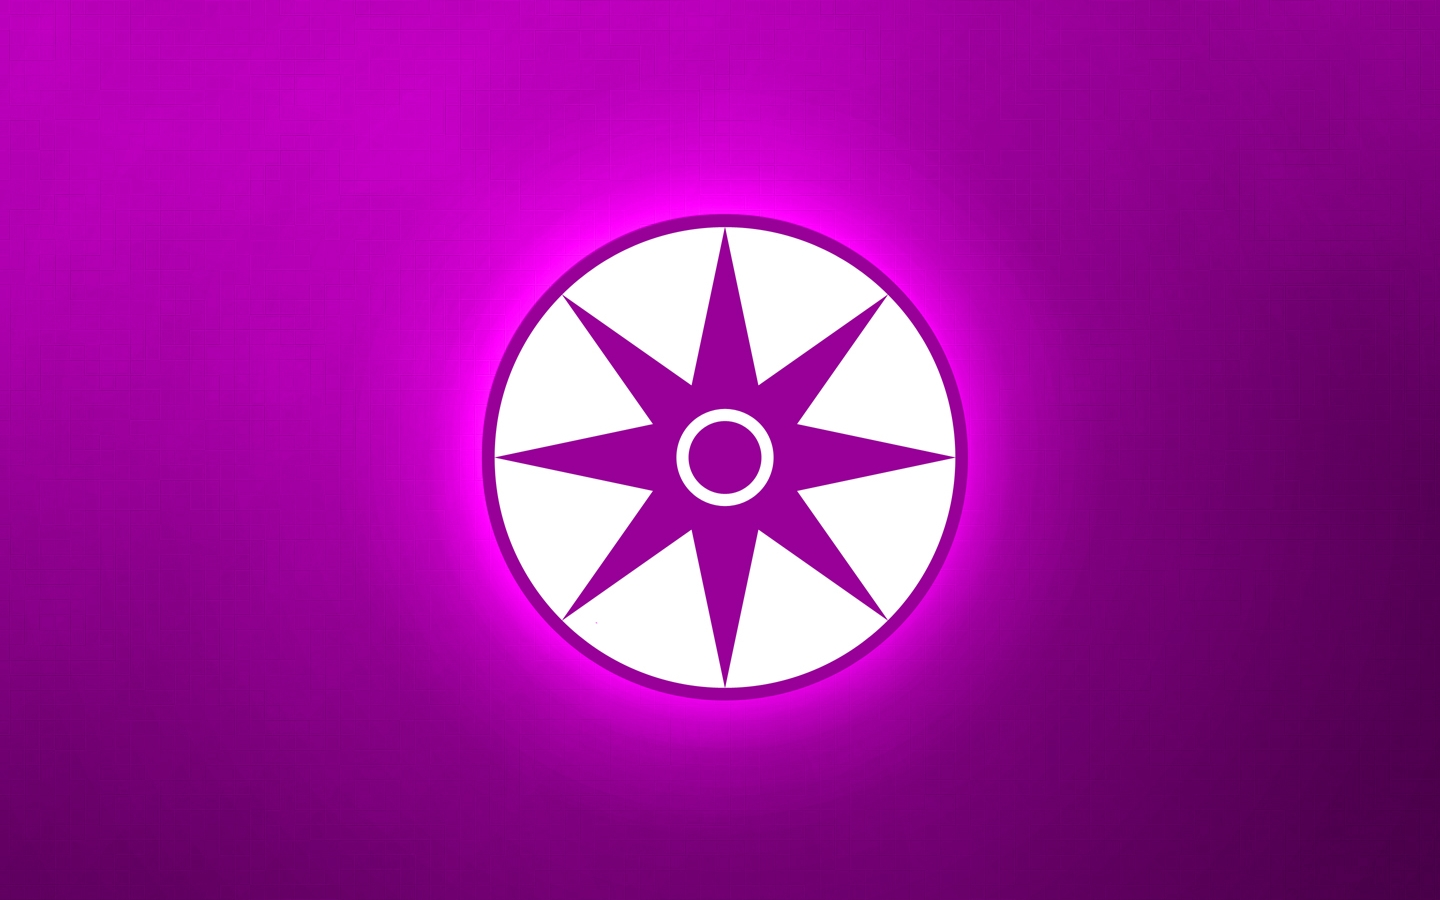 Star sapphire corps wallpaper and background image 1440x900 id 622168 wallpaper abyss - Sapphire wallpaper ...